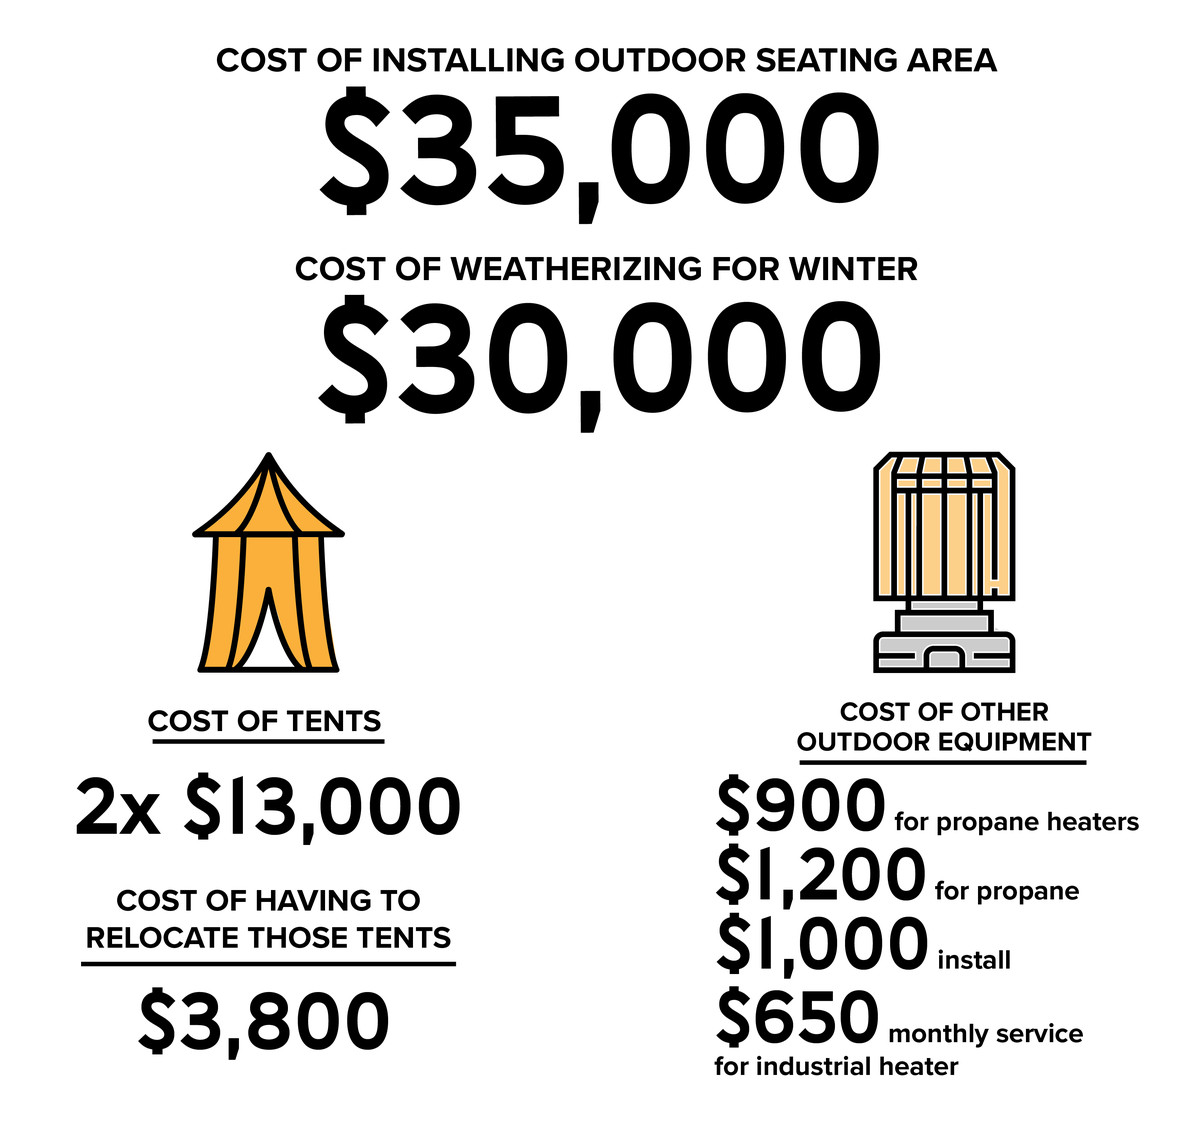 A visual explaining the costs of building, maintaining, and weatherizing outdoor dining setups as described in article.